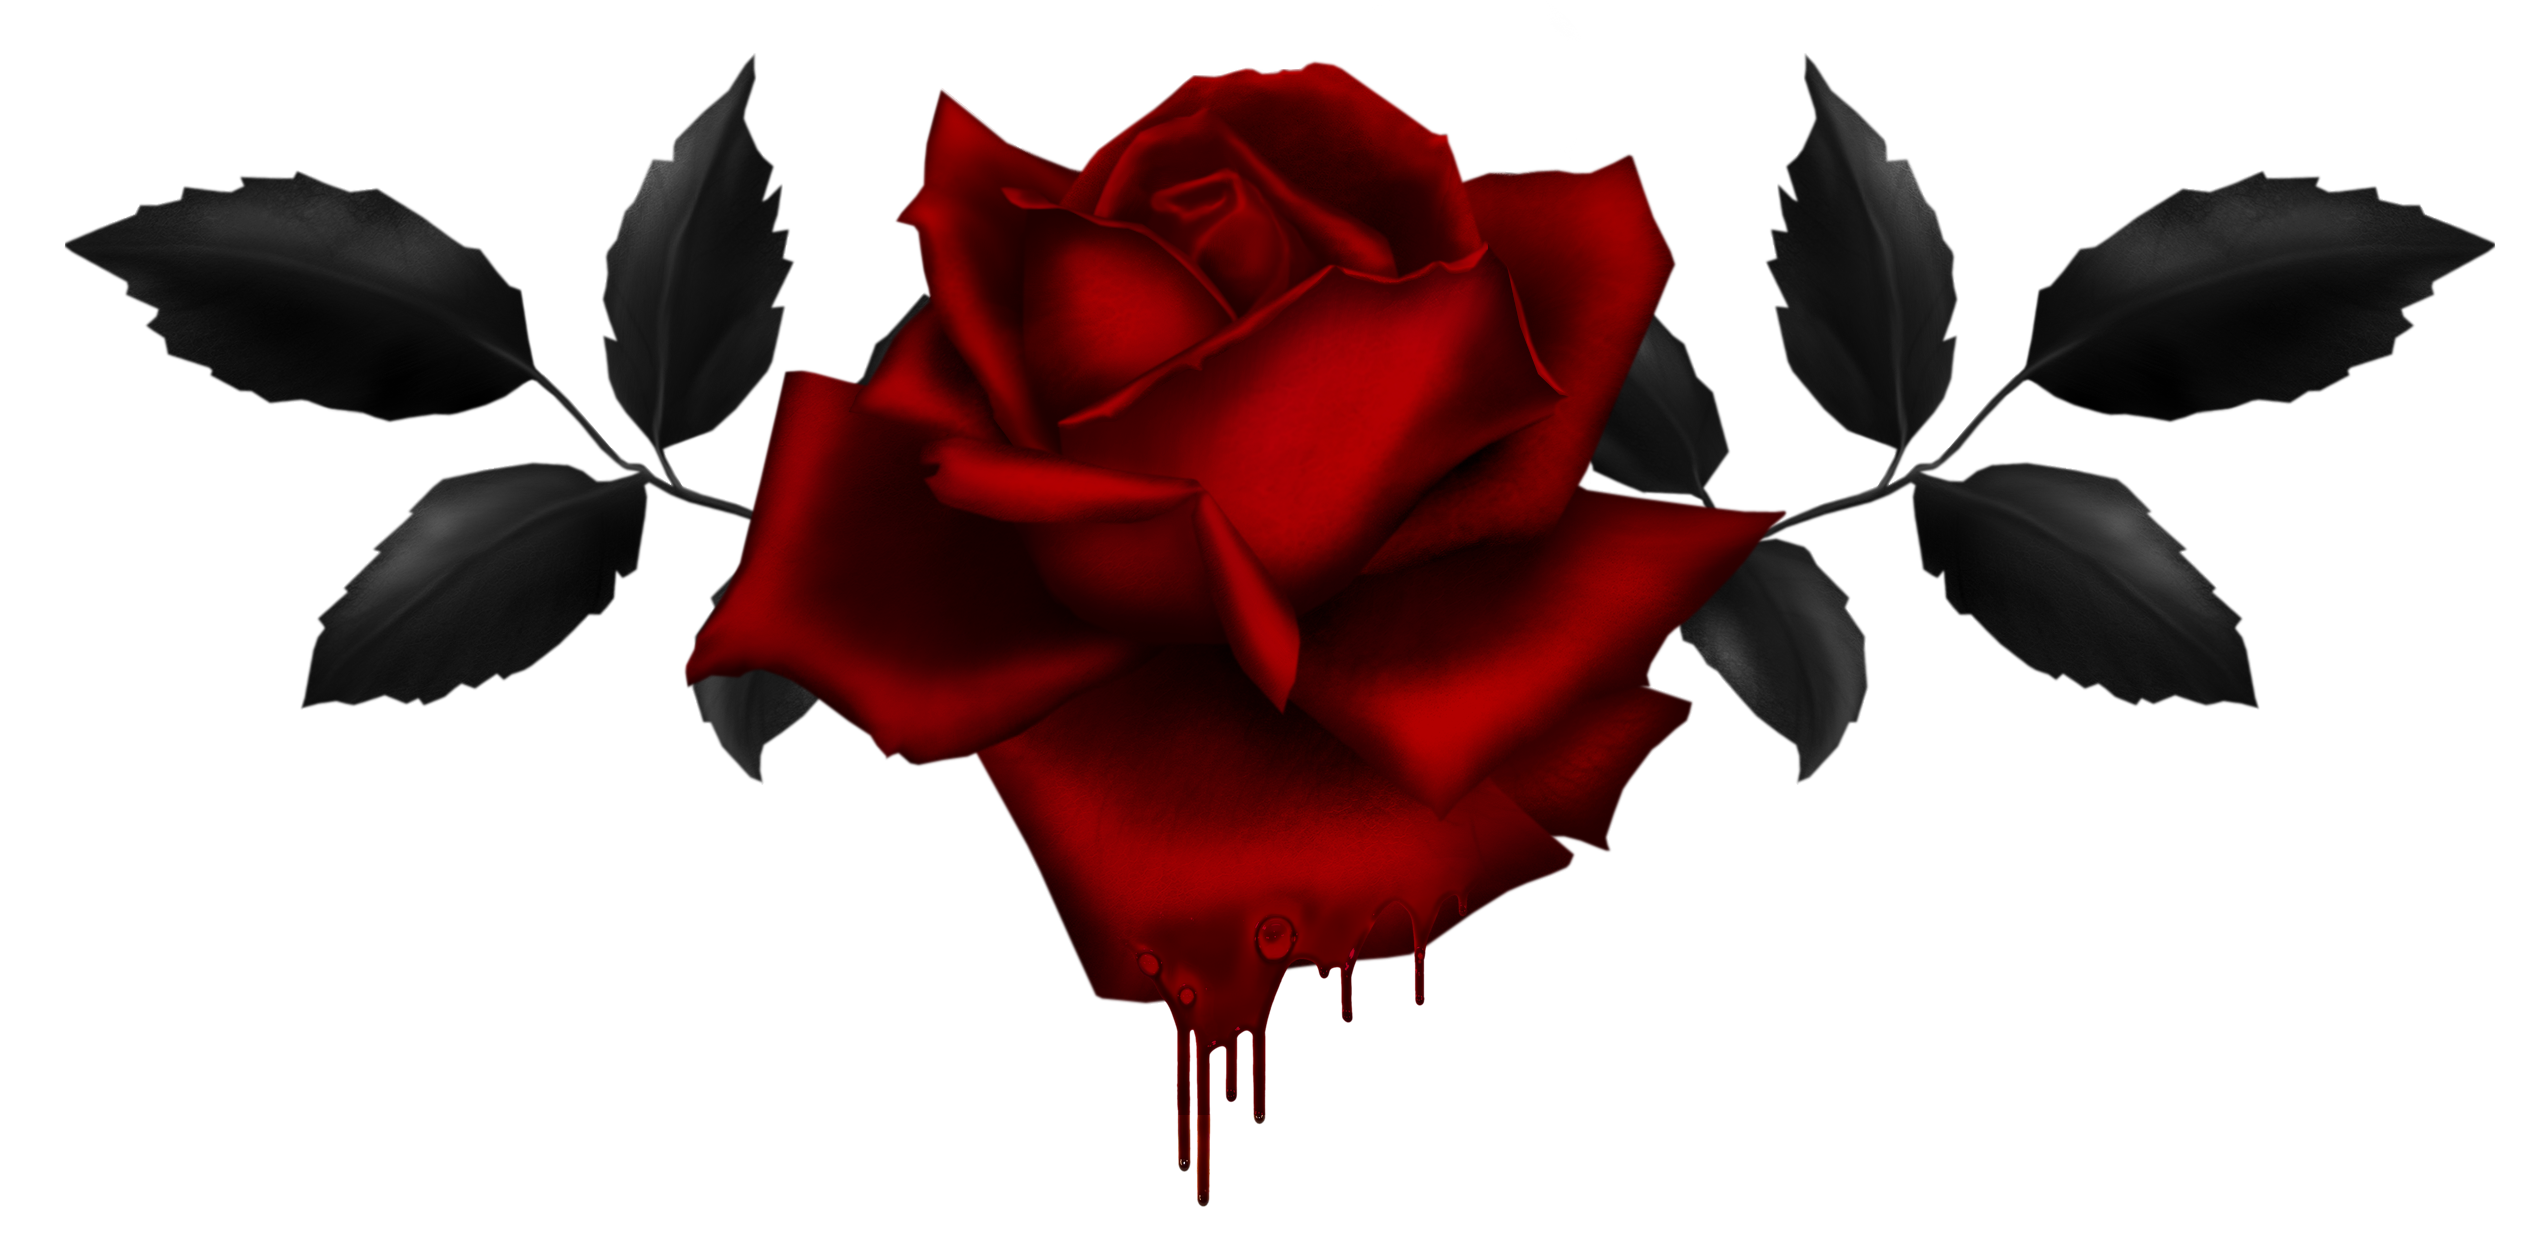 Download Gothic Rose PNG Image.